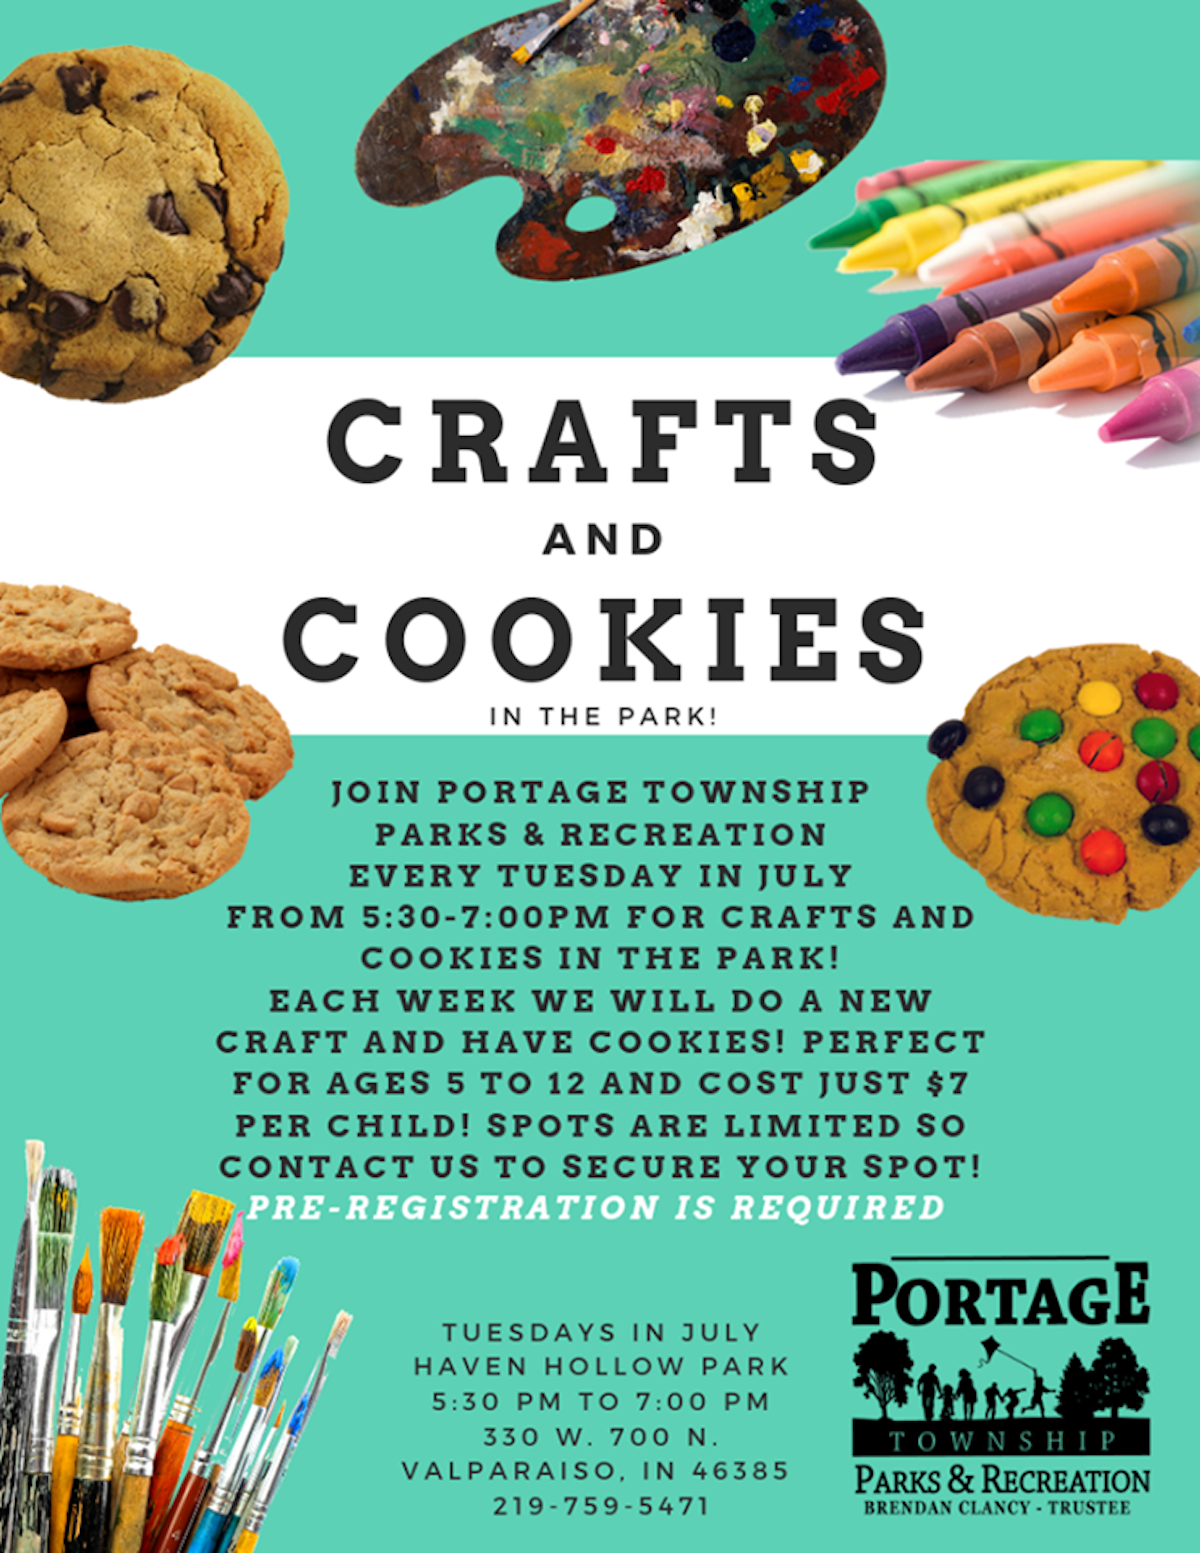 Crafts & Cookies in the Park